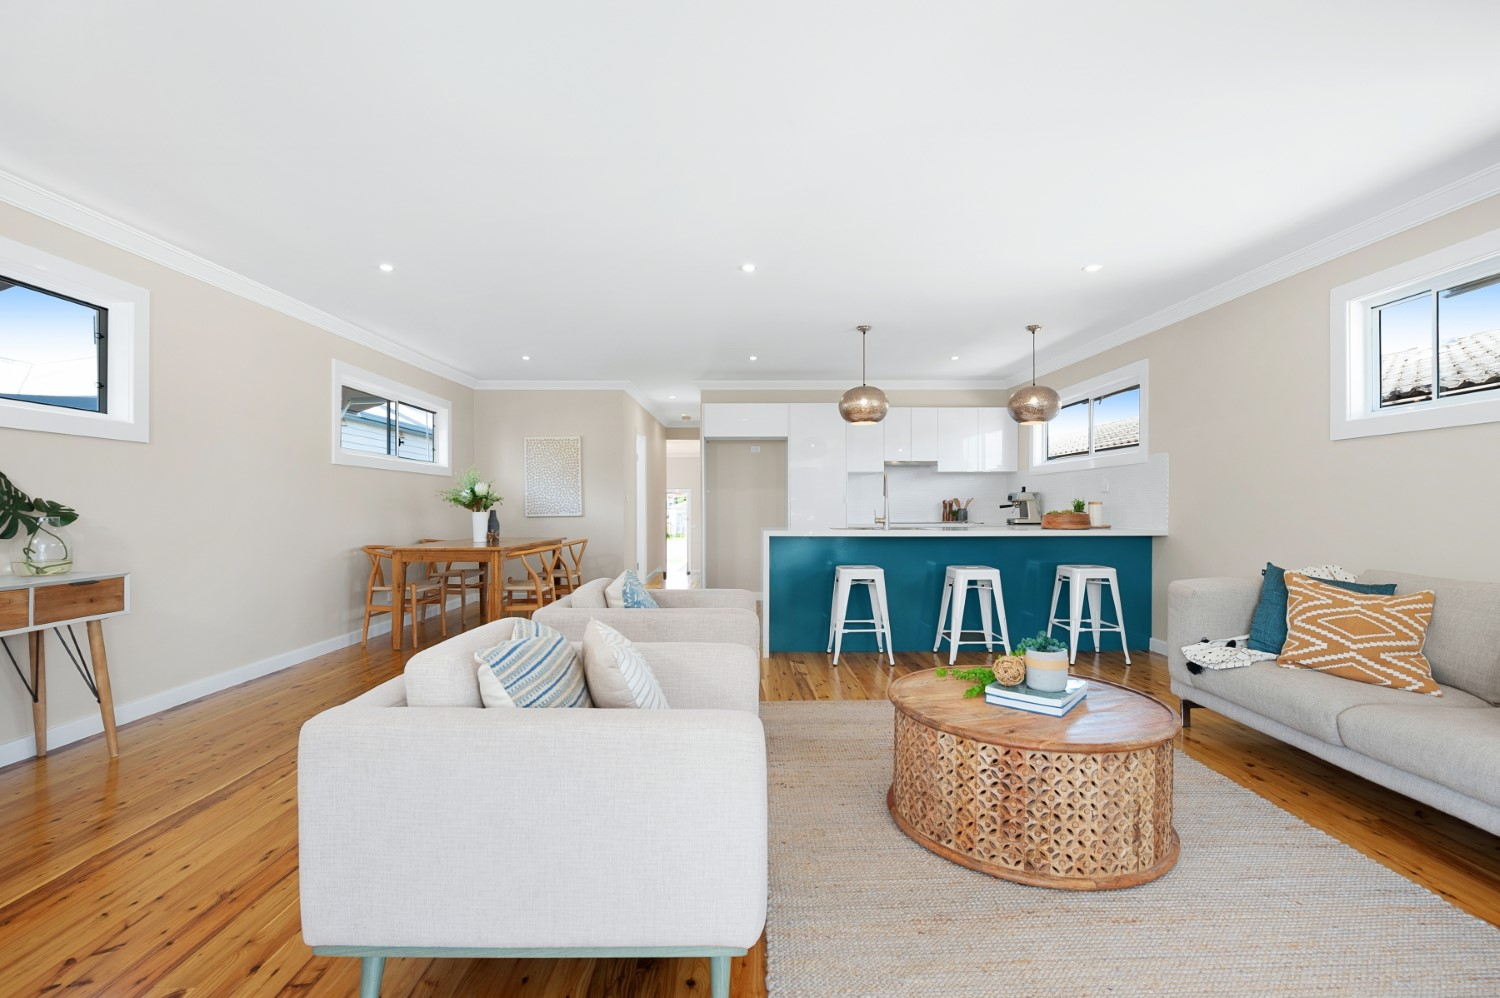 Charming weatherboard home | Belmont - https://www.peonyandsilk.com.au/wp-content/uploads/2019/02/Peony-and-Silk-Charming-weatherboard-home-Belmont-6.jpg